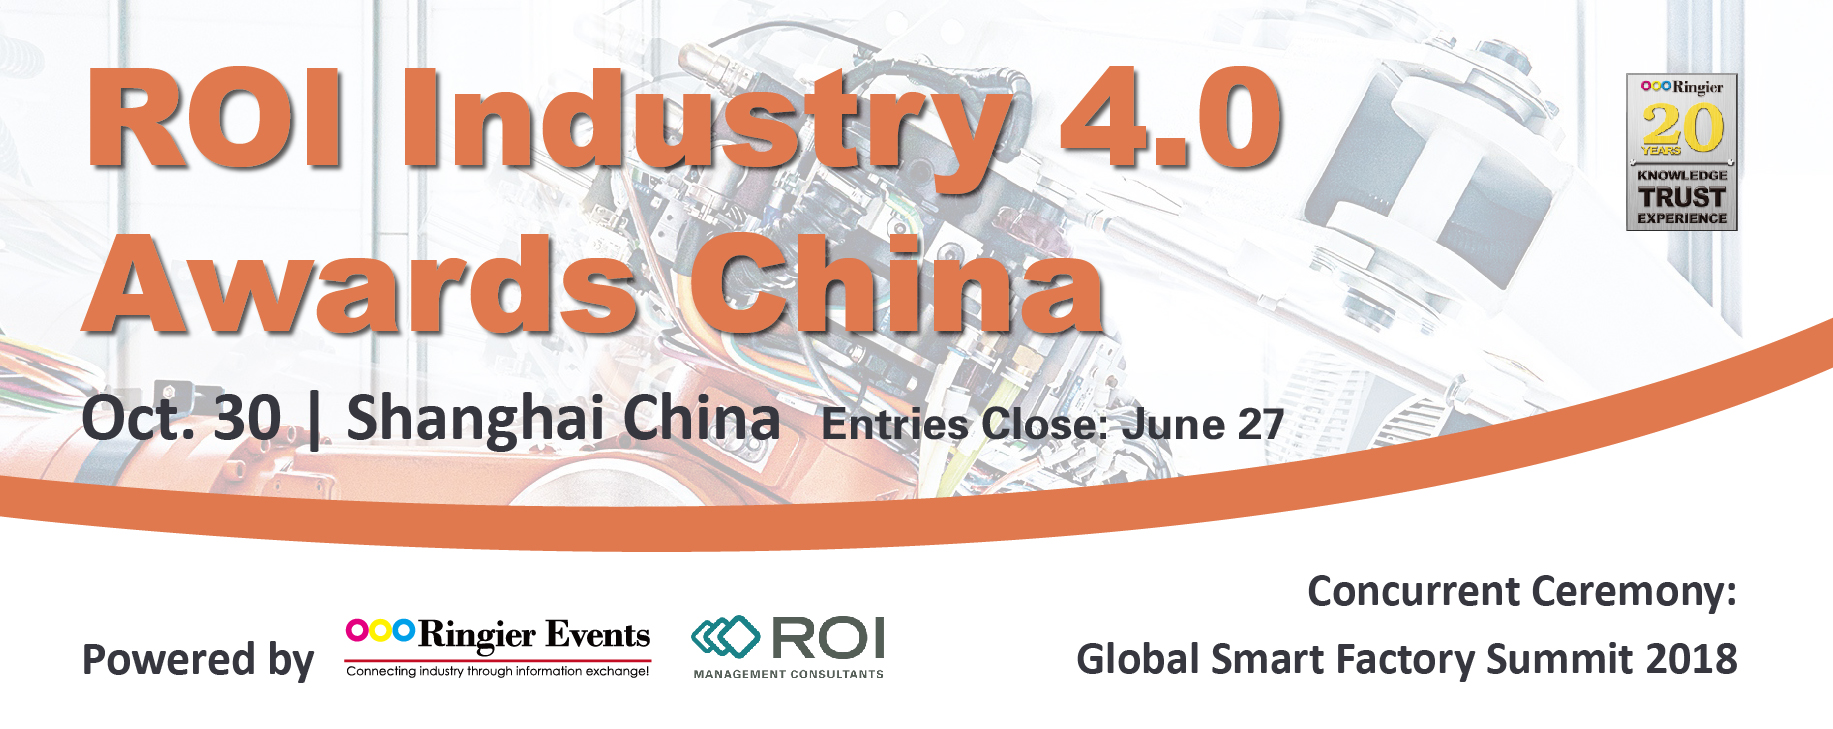 ROI Industry 4.0 Awards China